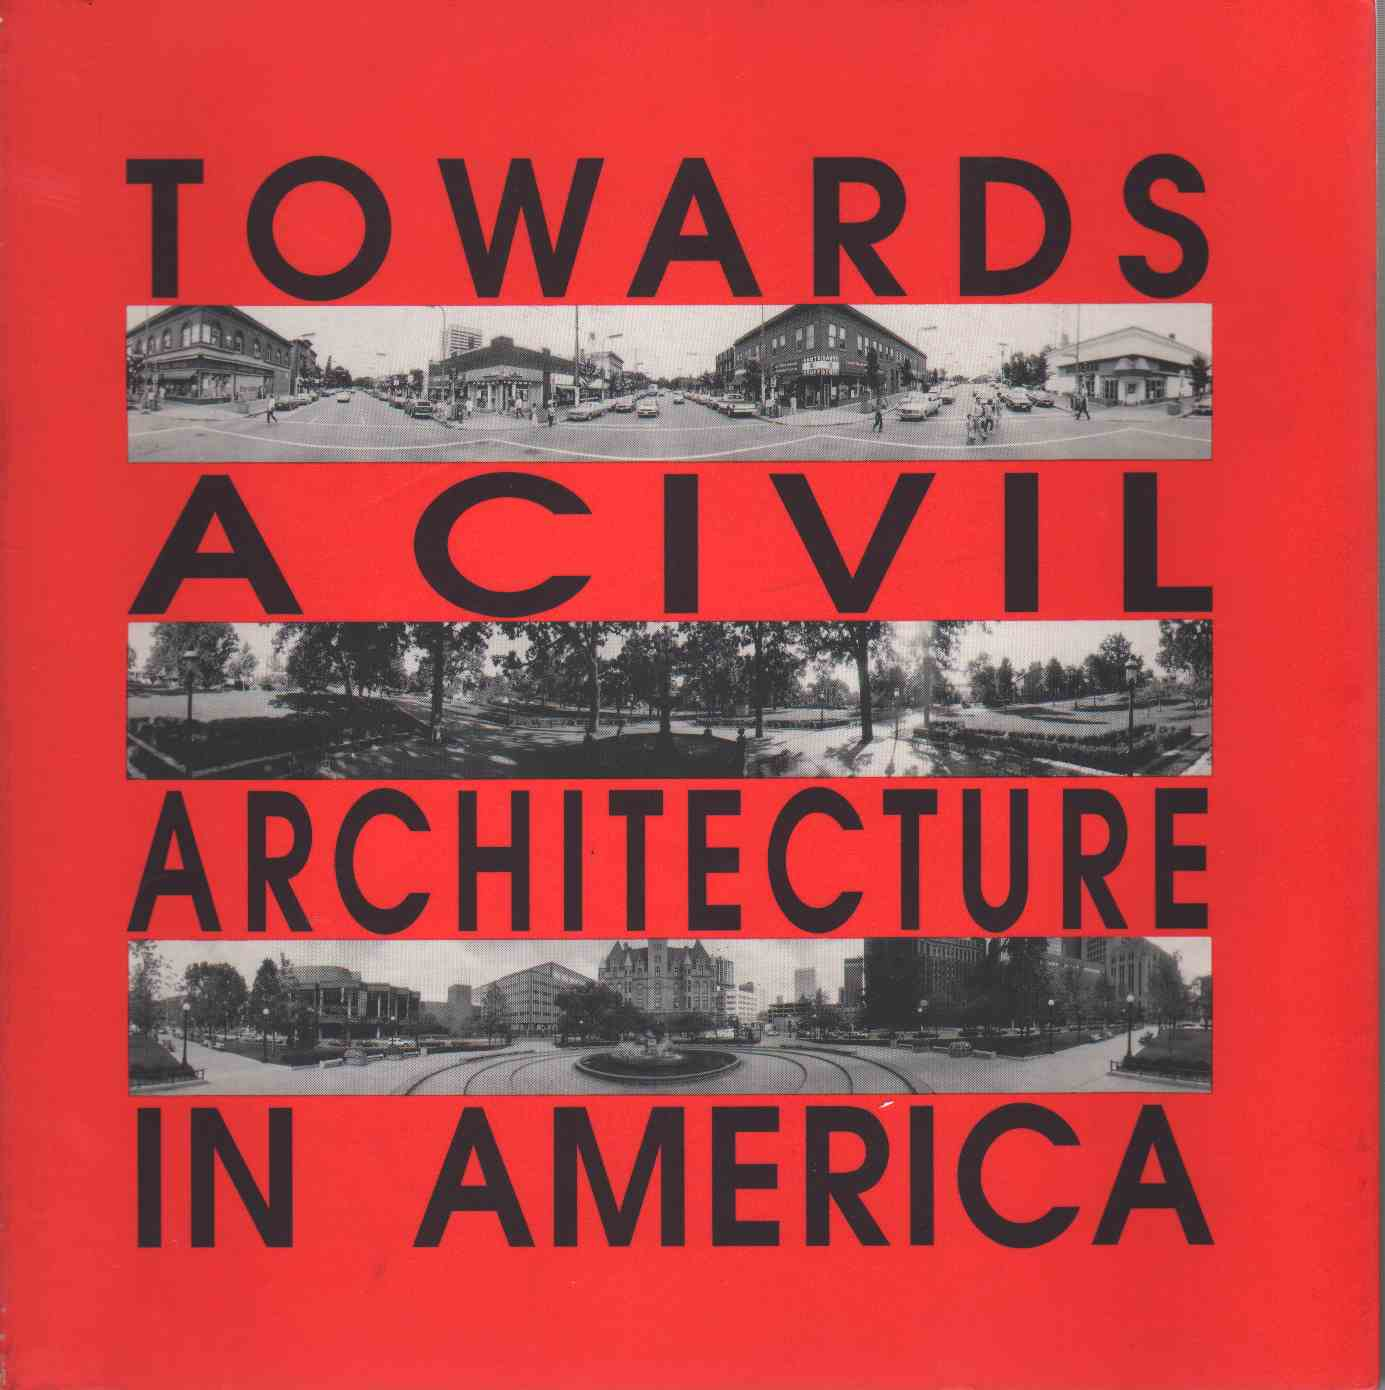 TOWARDS A CIVIL ARCHITECTURE IN AMERICA Modulus 23, Payton, Neal & Peter Waldman & Mark Schimmenti & William Carroll Westfall & Donald B. Genasci & Bria